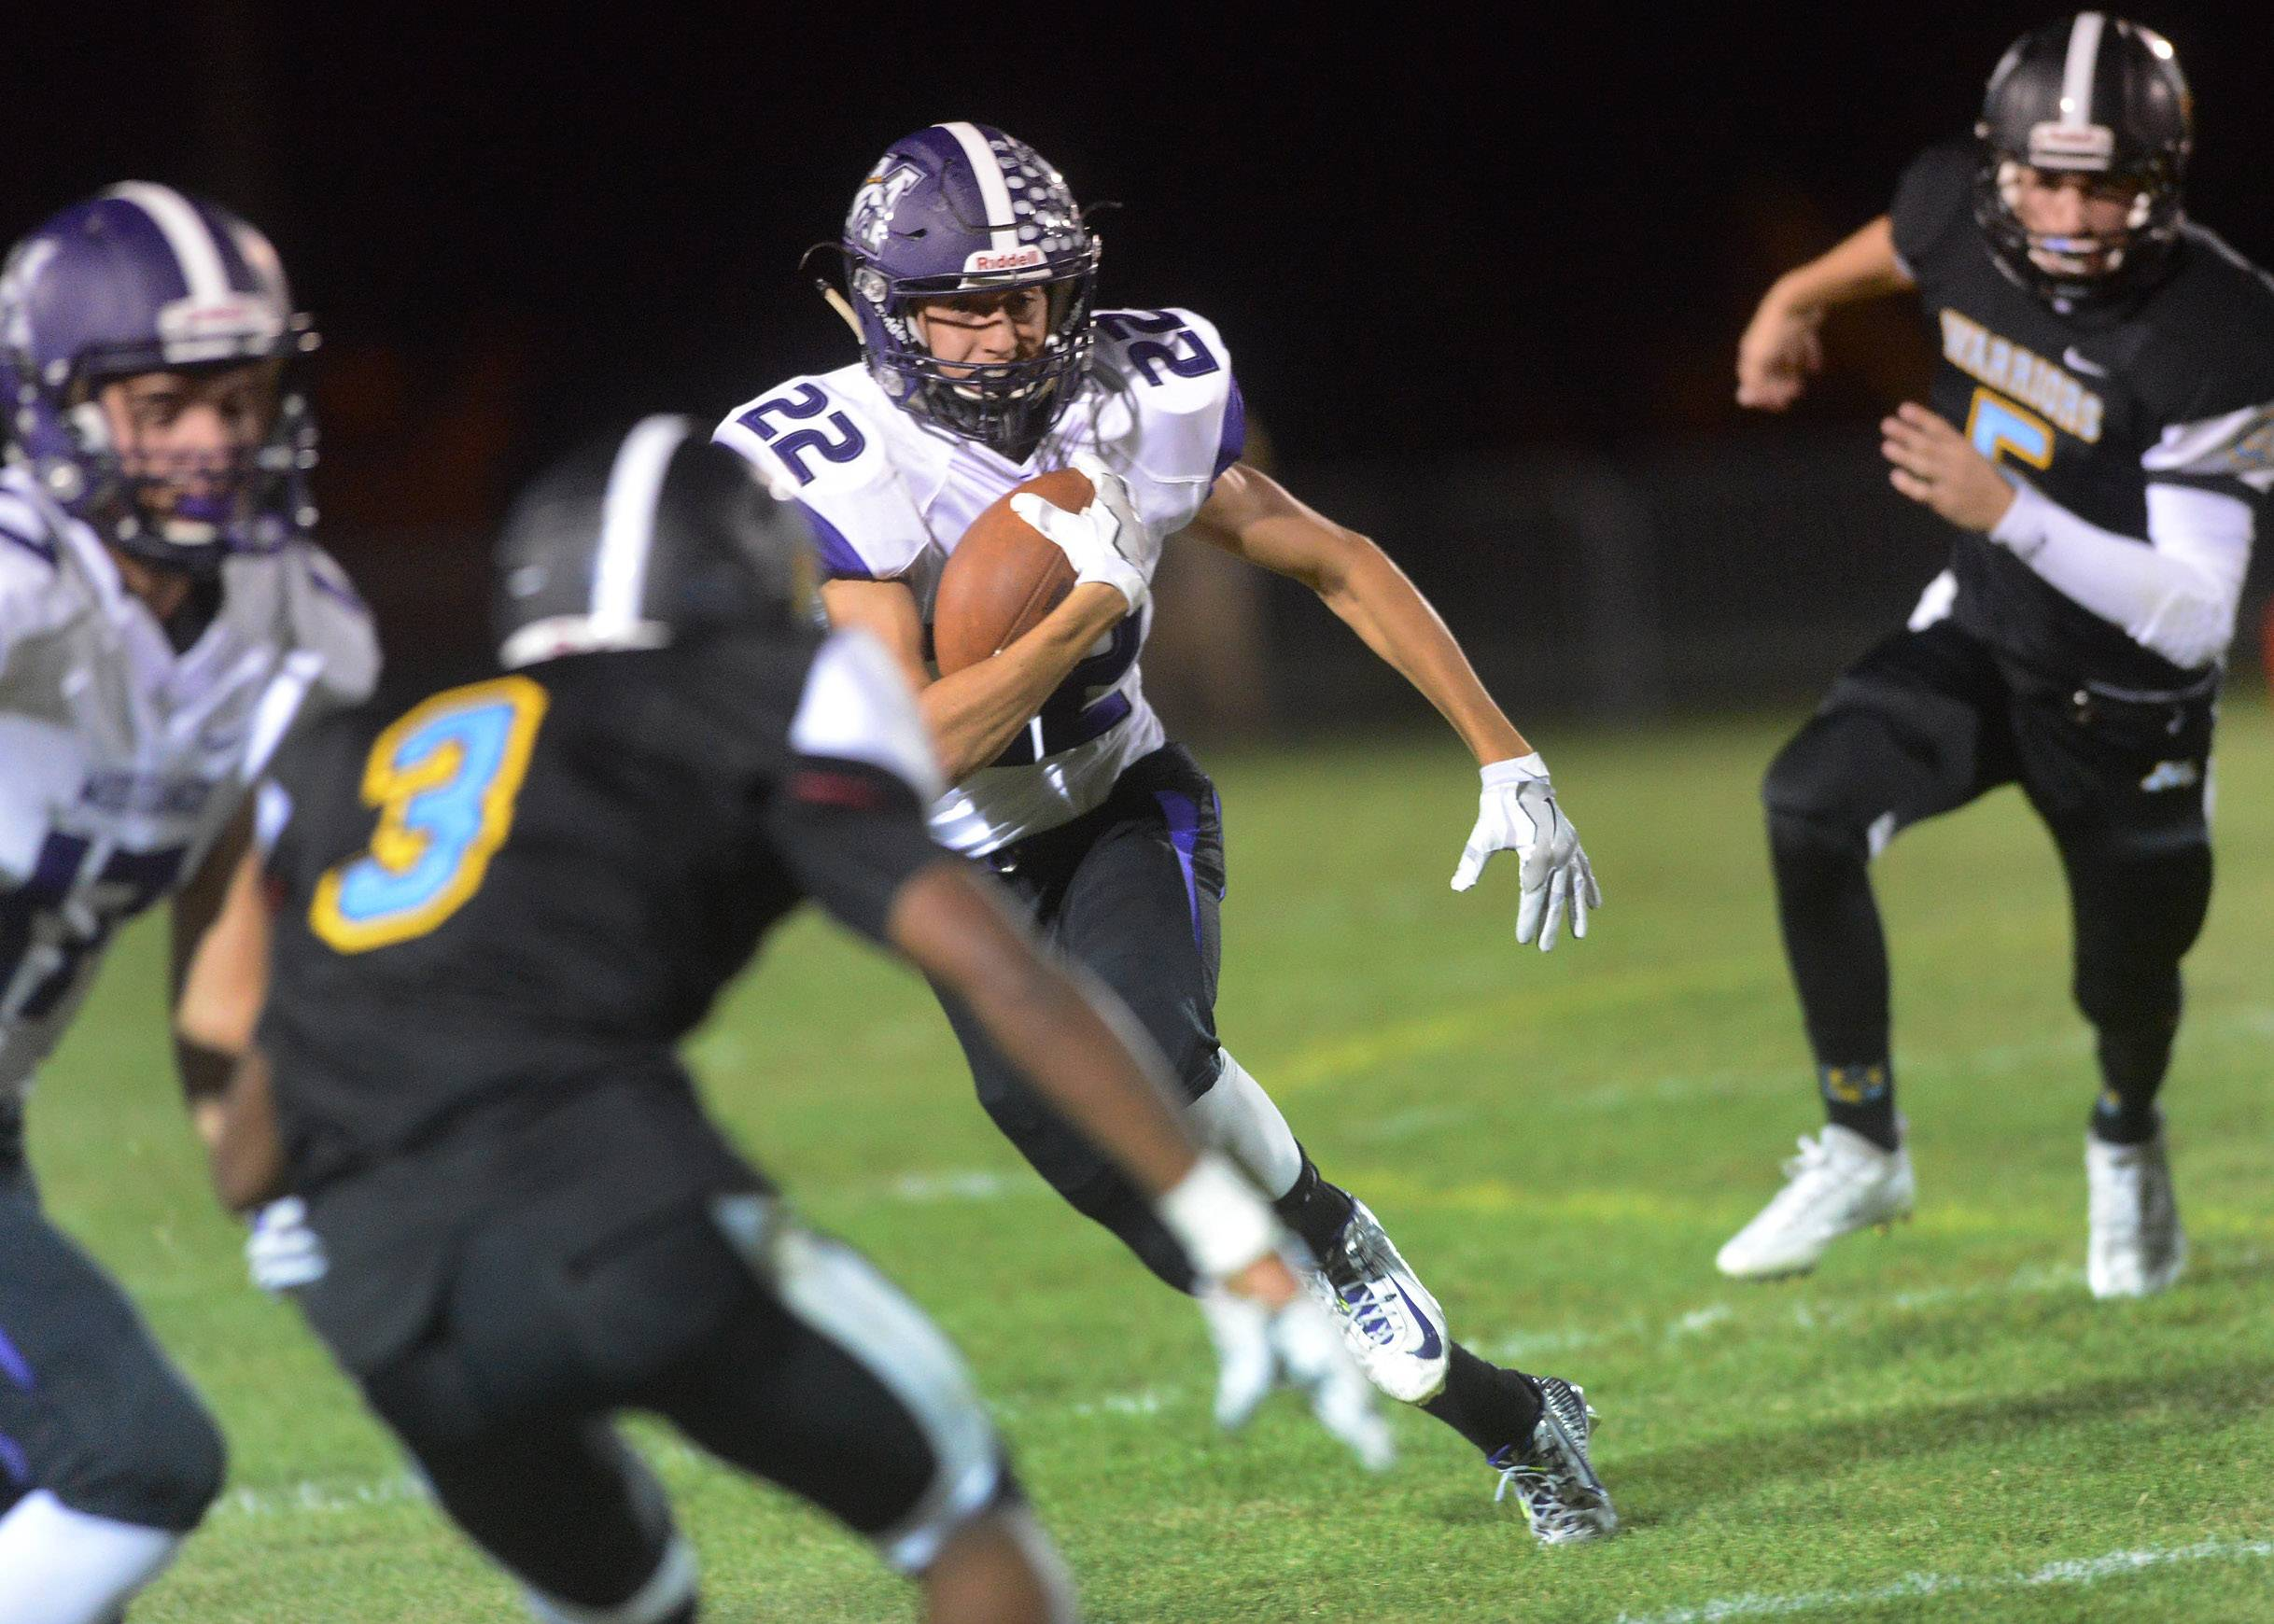 Images: Maine West falls to Rolling Meadows, 13-0 in football